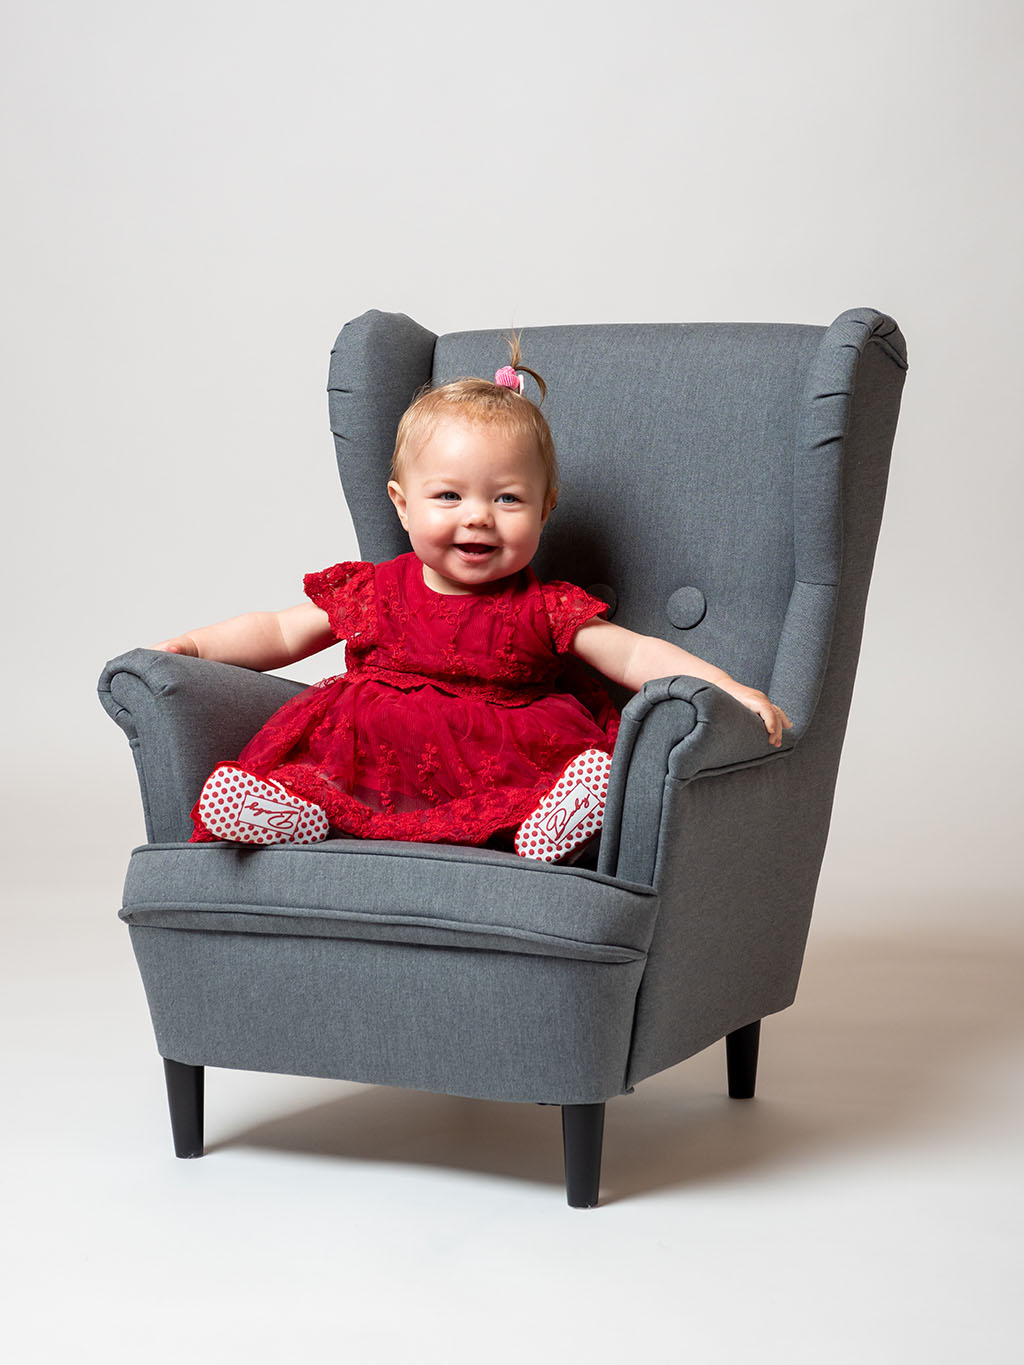 smiling baby sitting in armchair in the studio taken by qualified baby photographer in Braintree, Essex